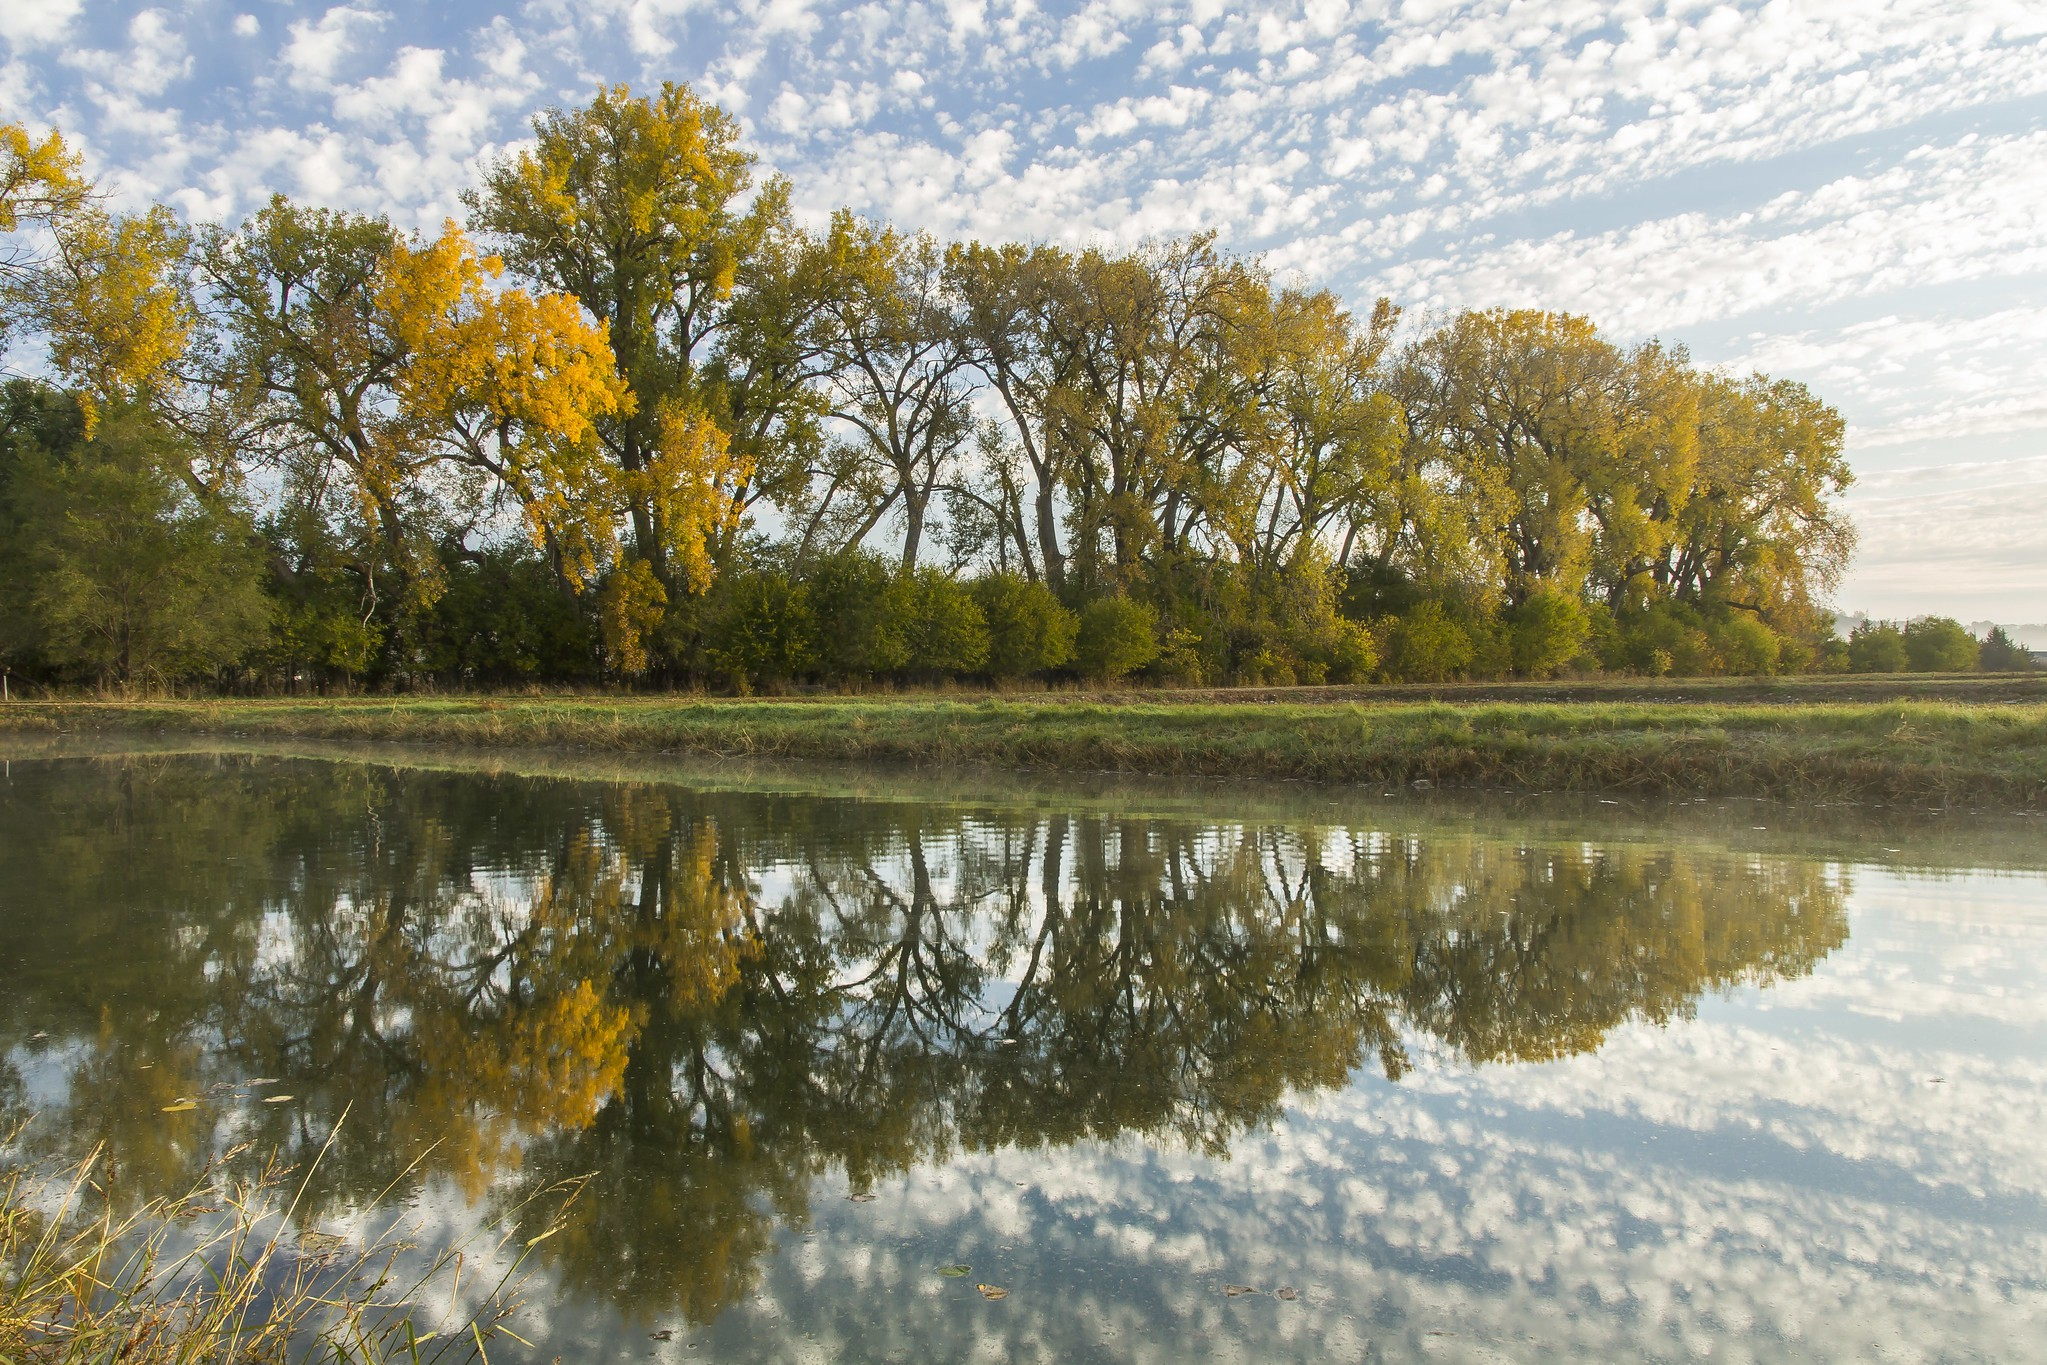 A cloudy blue sky and trees with yellow leaves are reflected in calm waters.